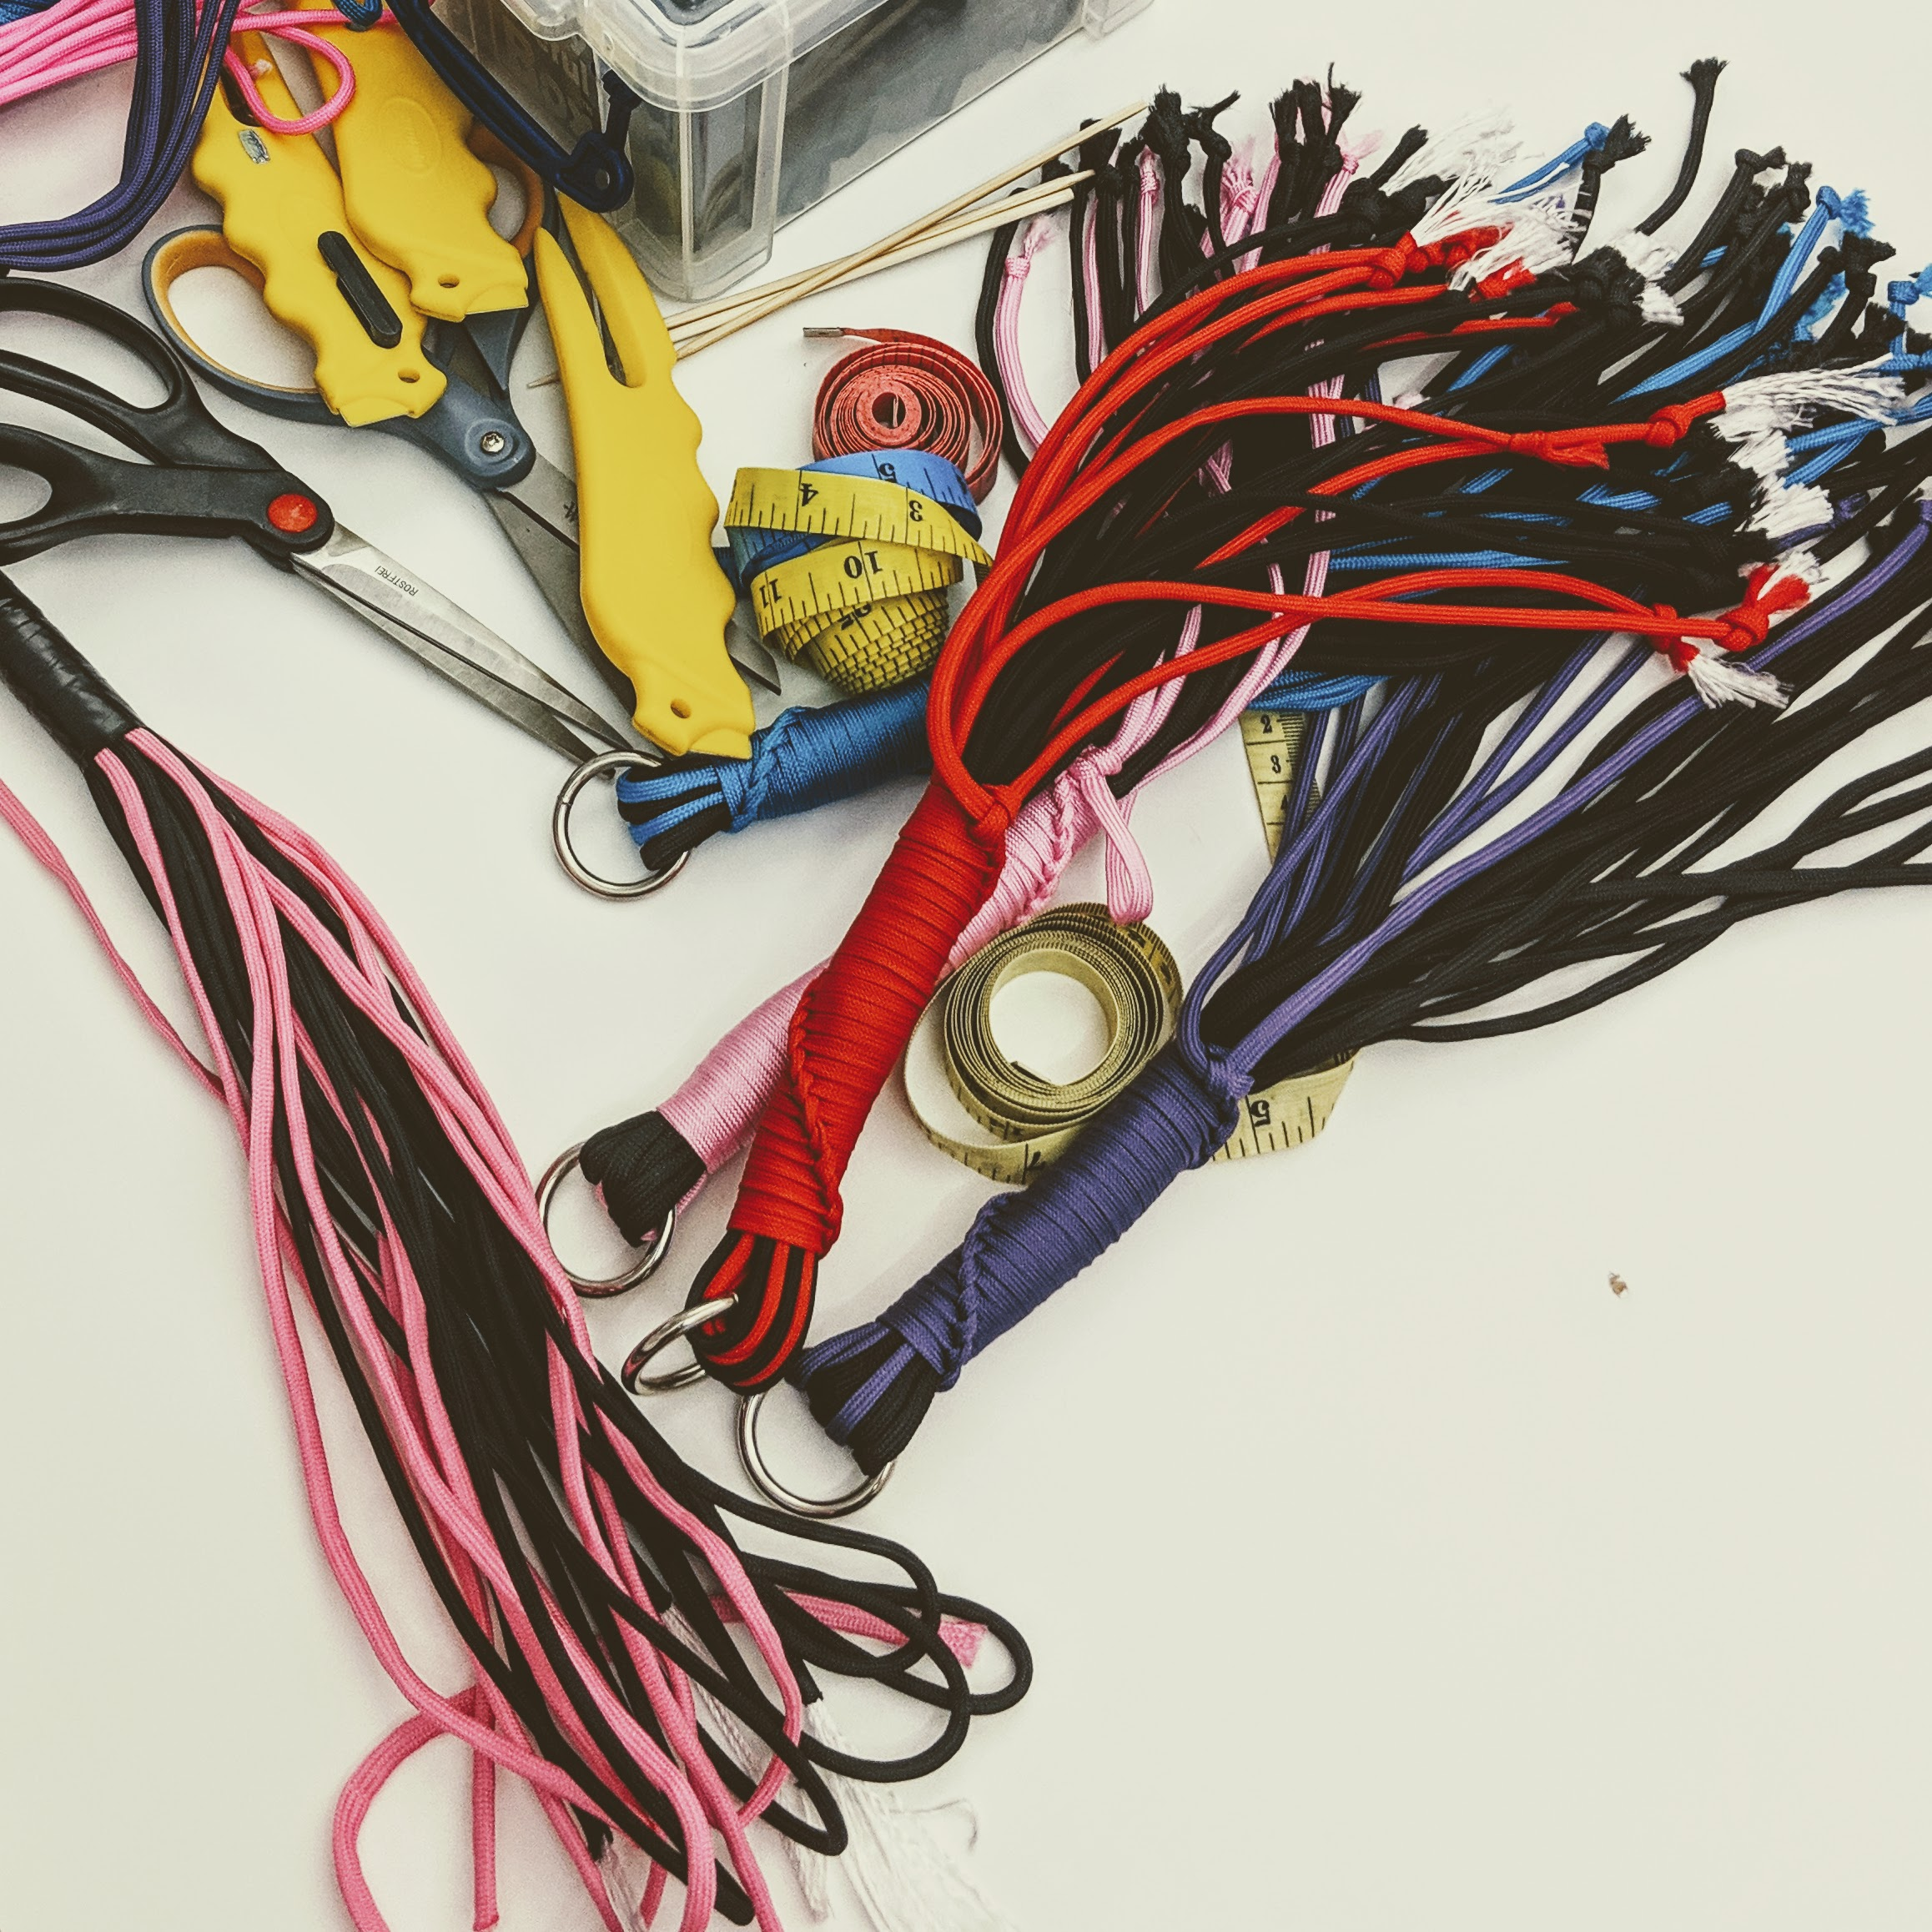 Mini-floggers and other bits on the crafting table at Eroticon